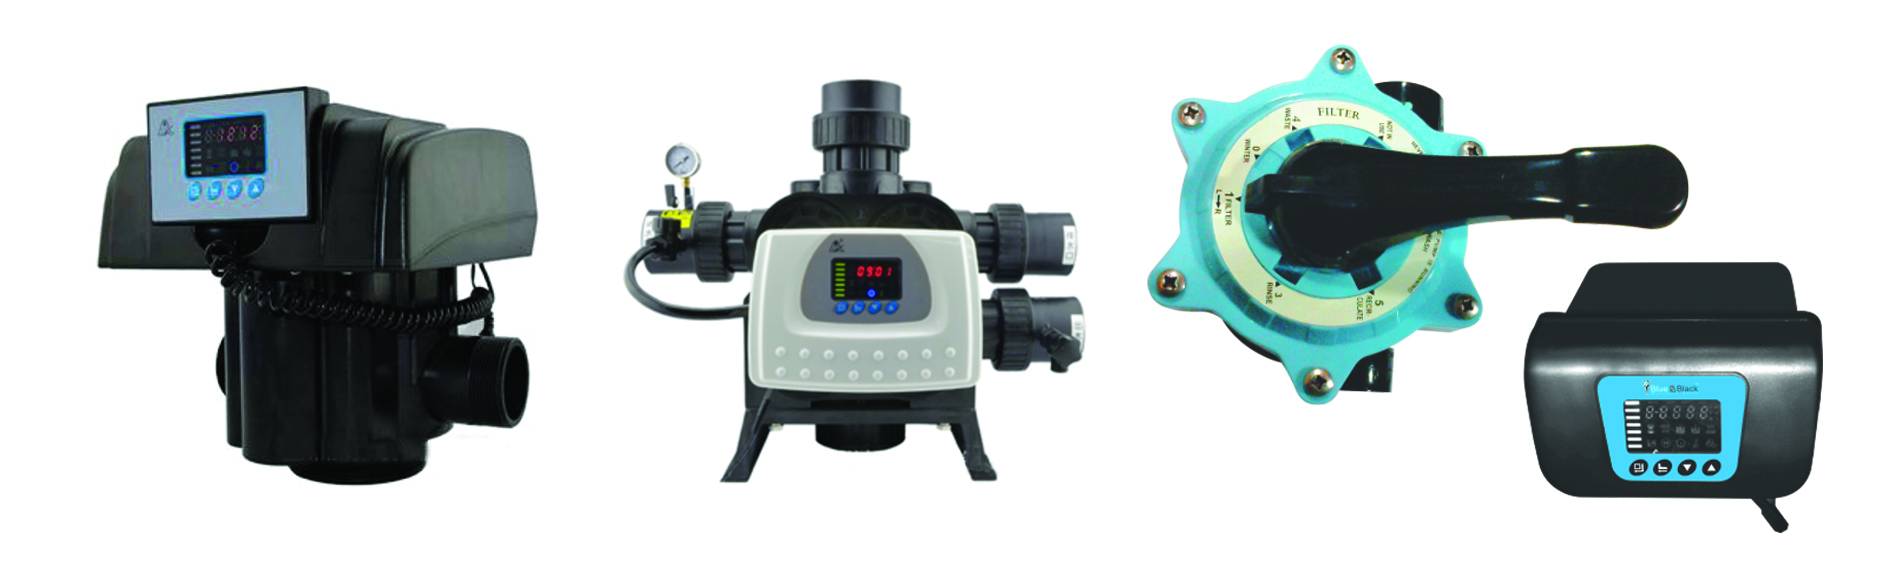 MANUAL & AUTO MULTPORT VALVES